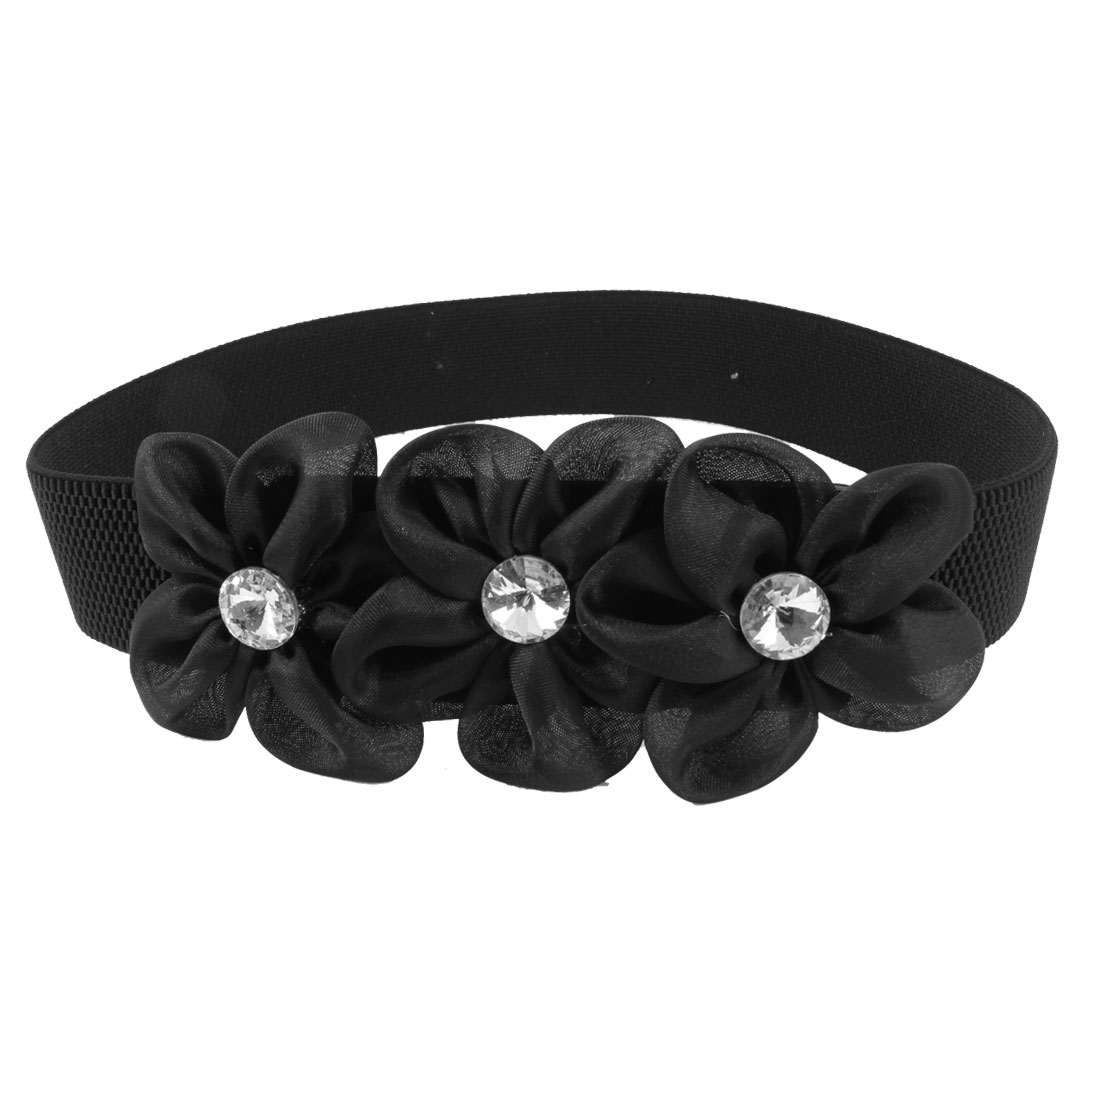 Lady Faceted Crystal Inlaid Black Organza Flower Decor Elastic Waist Band Belt